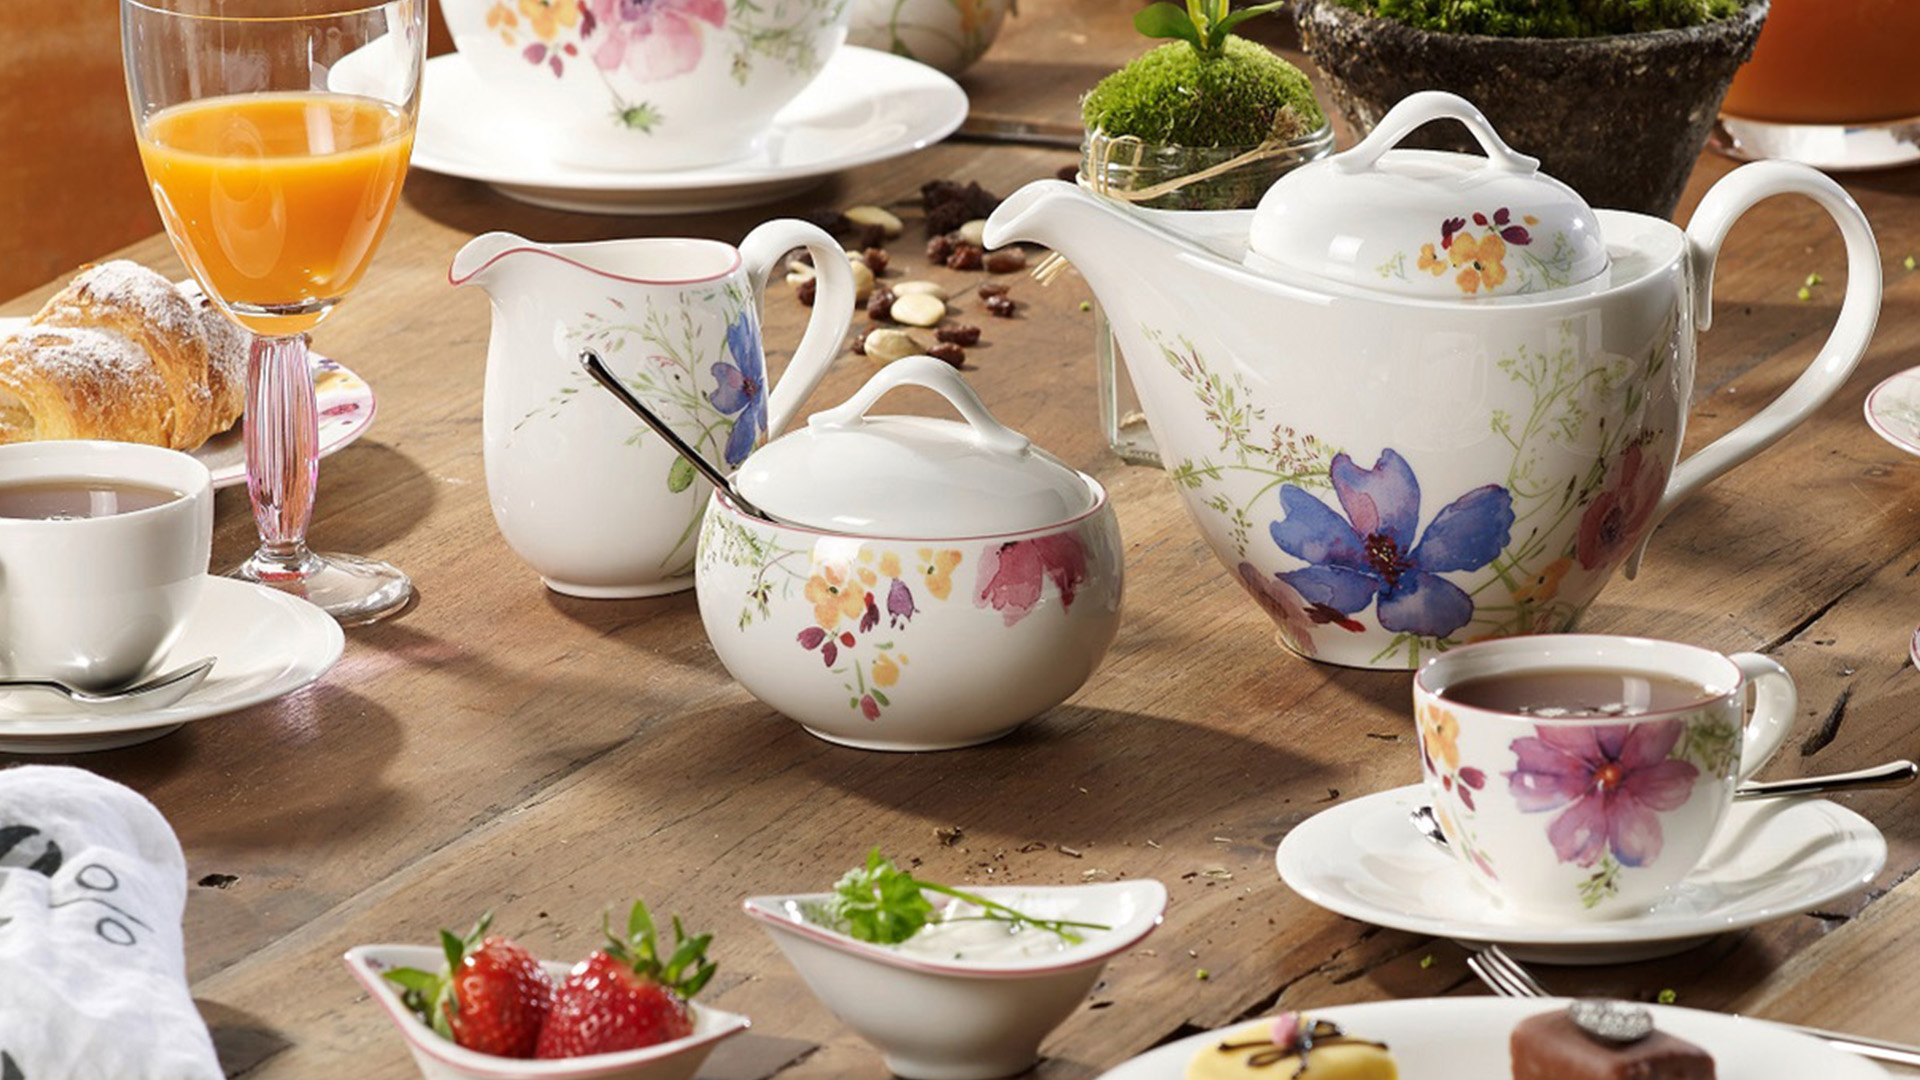 Villeroy Und Boch Fliesen Outlet Villeroy And Boch Outlet Boutique • Bicester Village